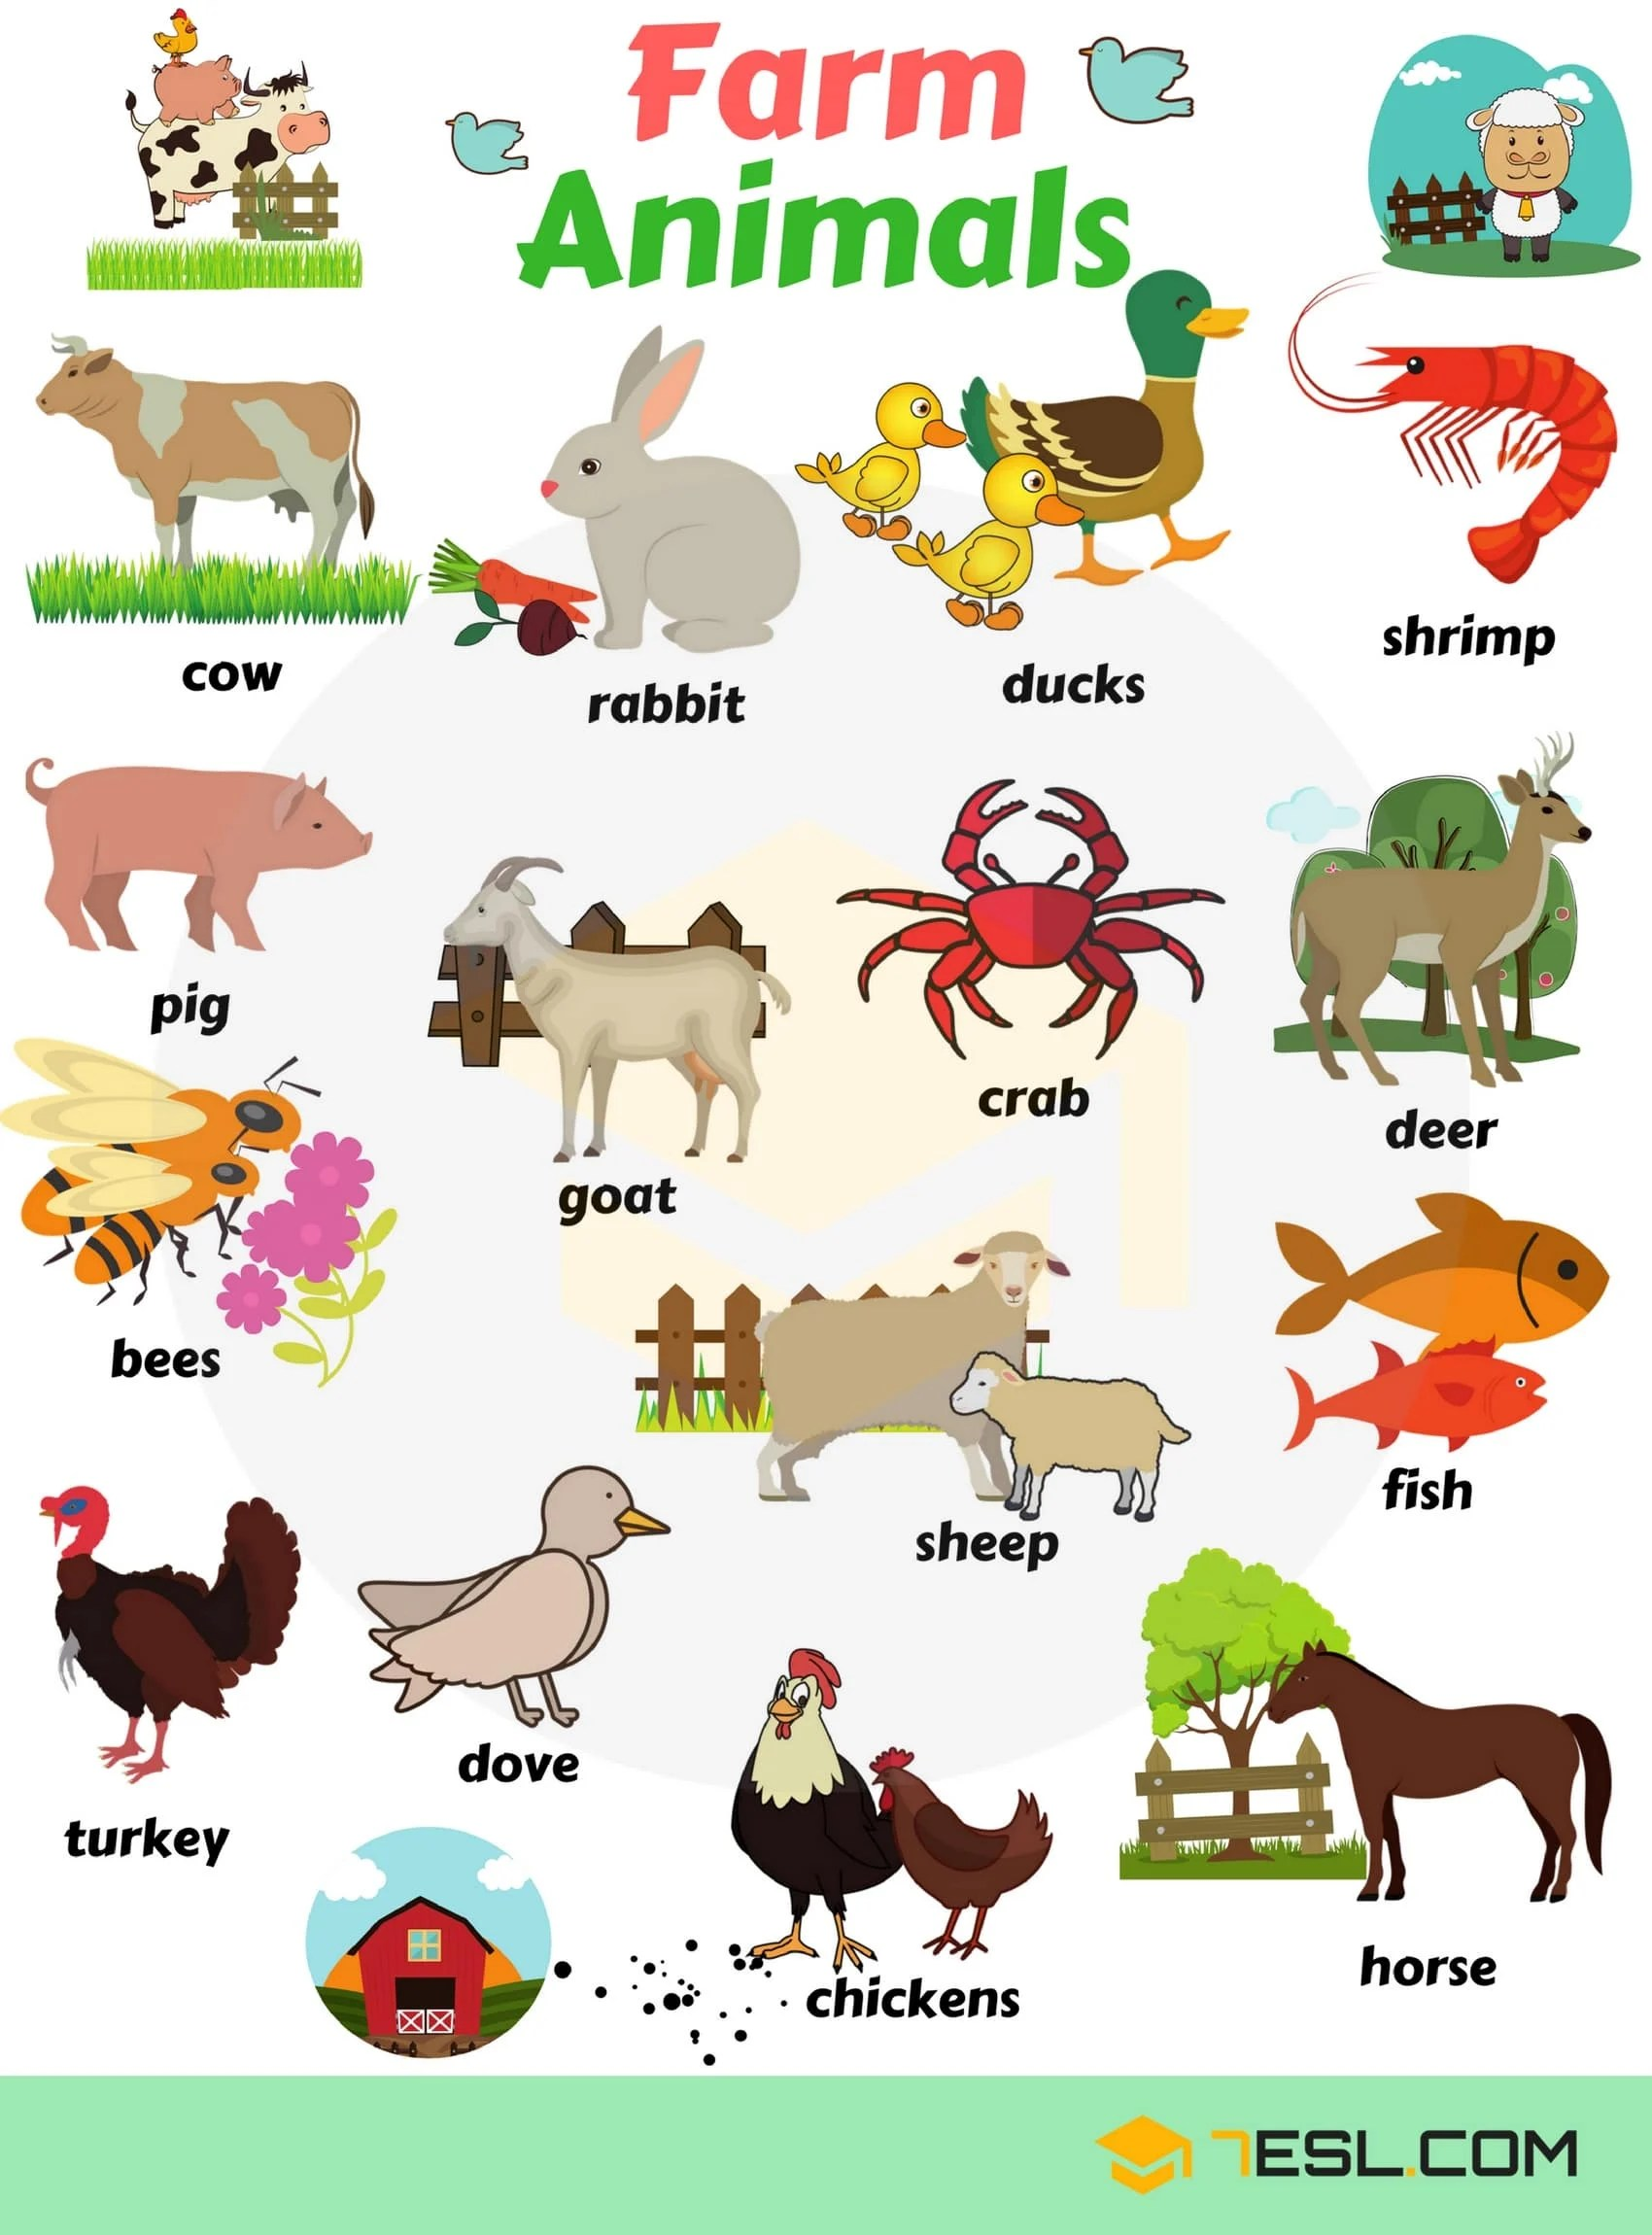 Farm Animals Vocabulary in English 12